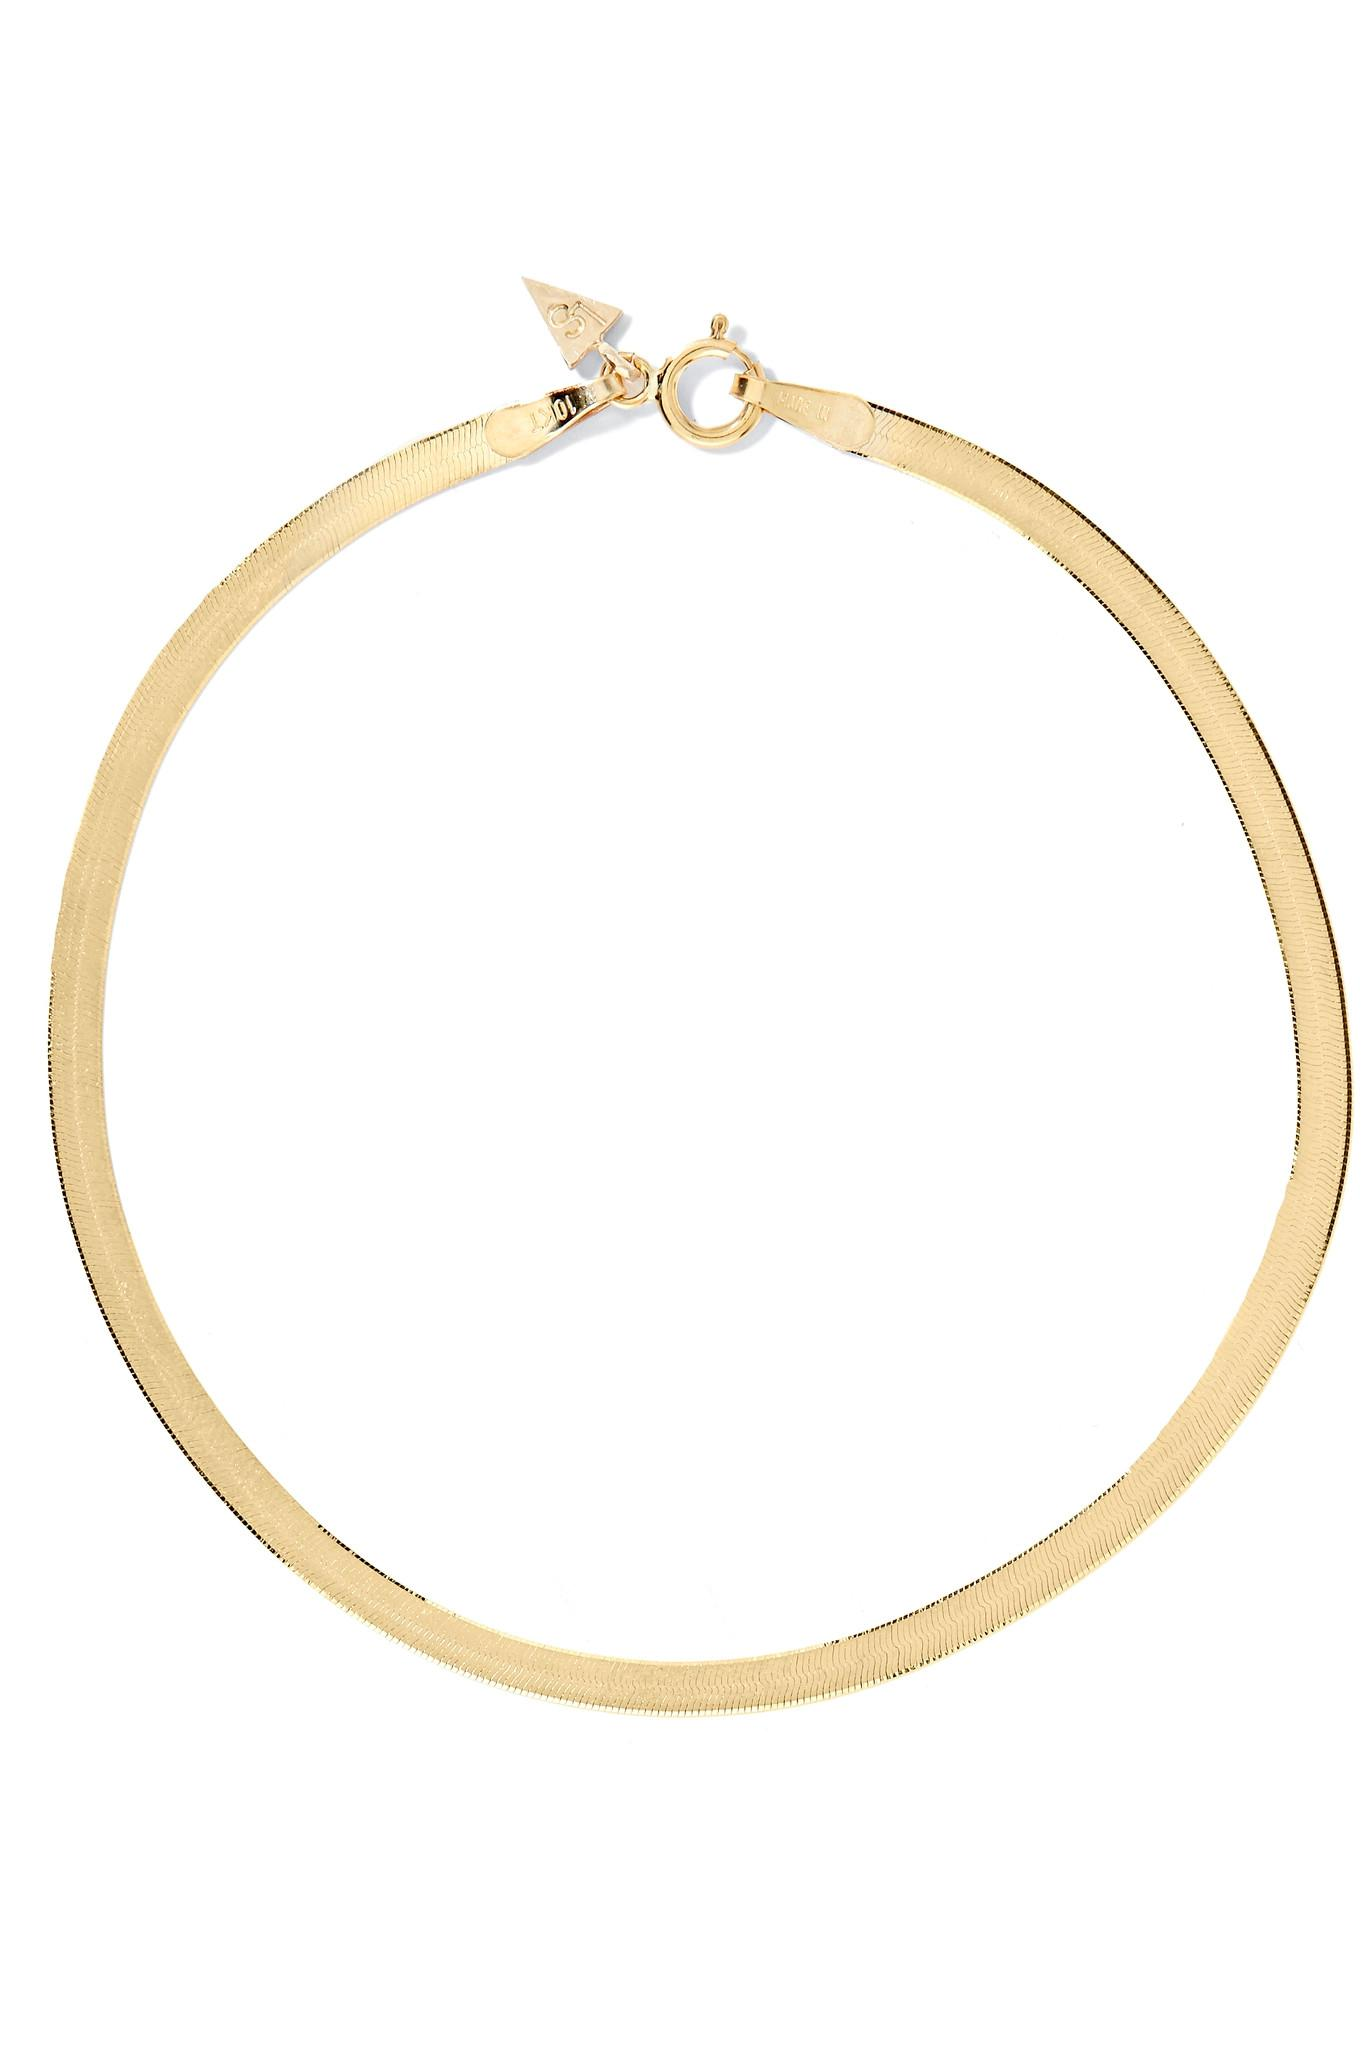 watches braided fremada inch free gold overstock bangles bracelet bracelets tricolor karat product strand herringbone bangle today jewelry shipping